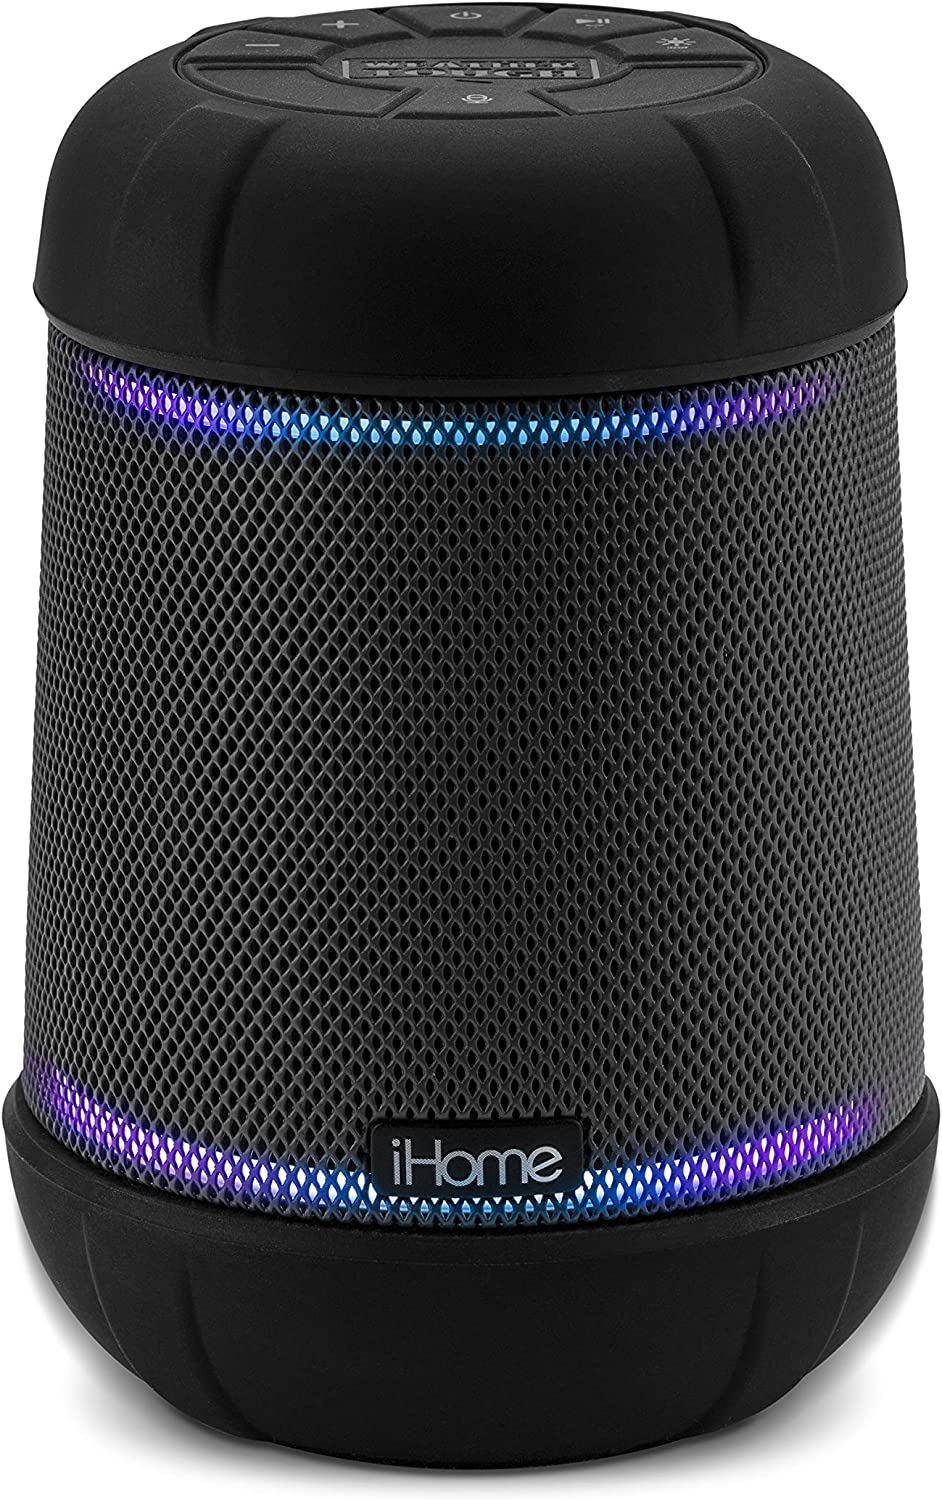 iHome iBT158 Smart Bluetooth Speaker - With Alexa Built-In and Color Changing LED Lights - Perfect Portable Audio Device for Parties, Outdoors, and Other Events